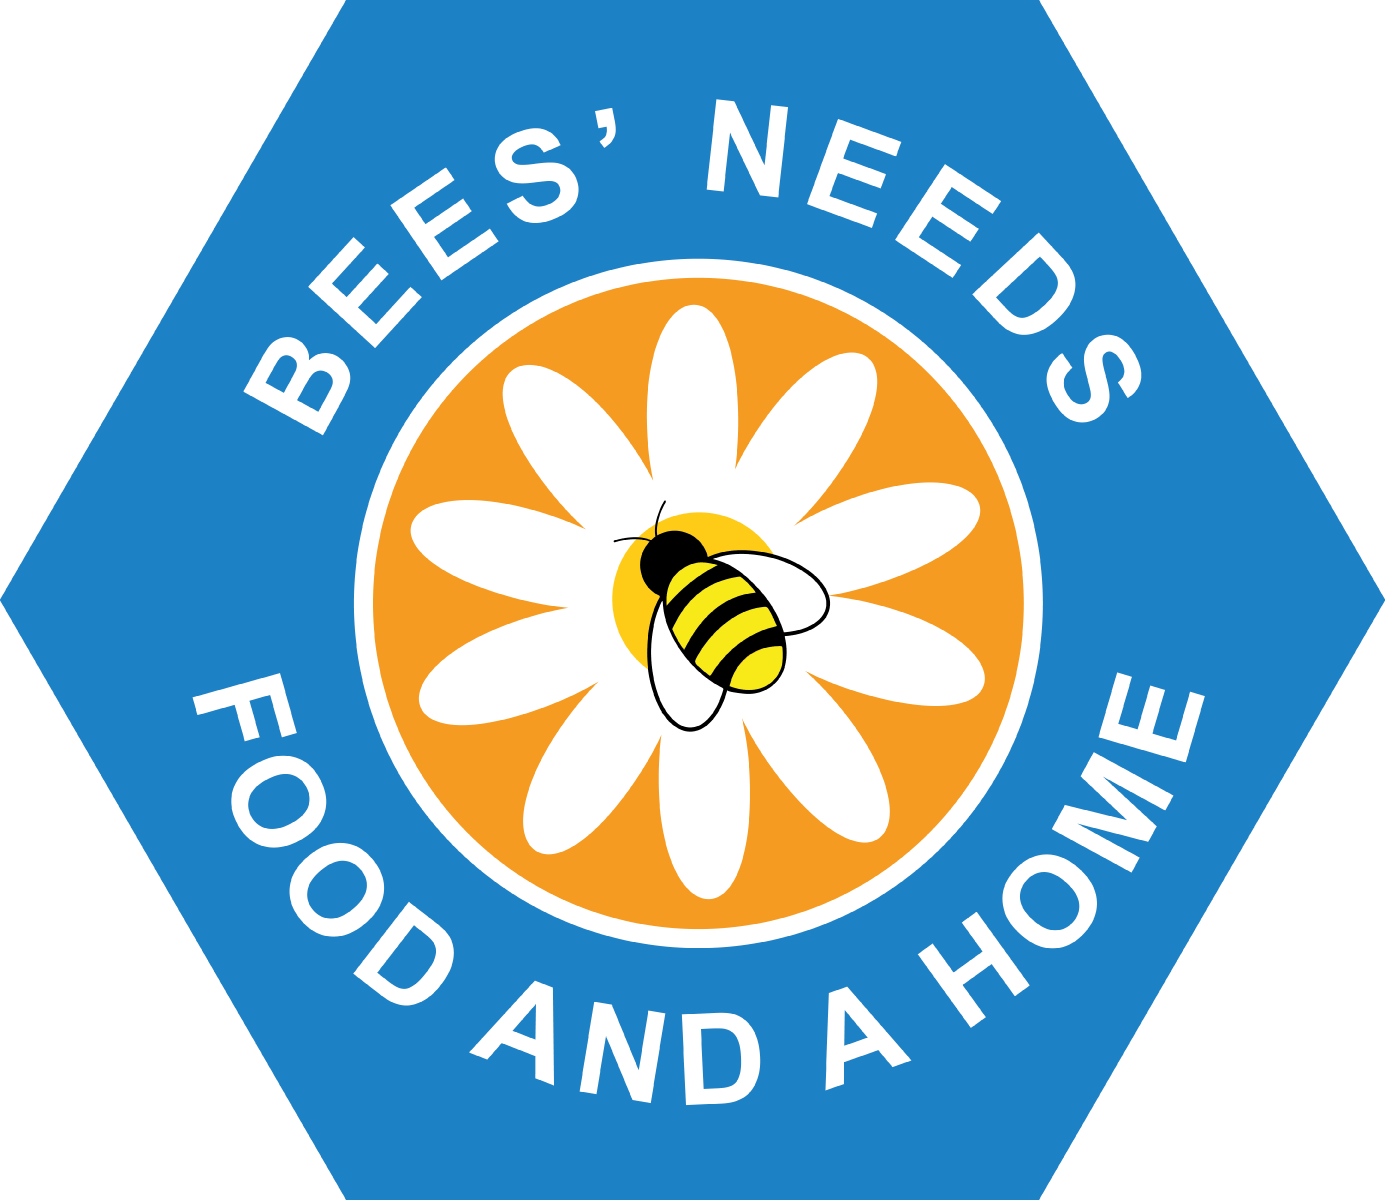 SILLOTH – BEES' NEEDS AWARD